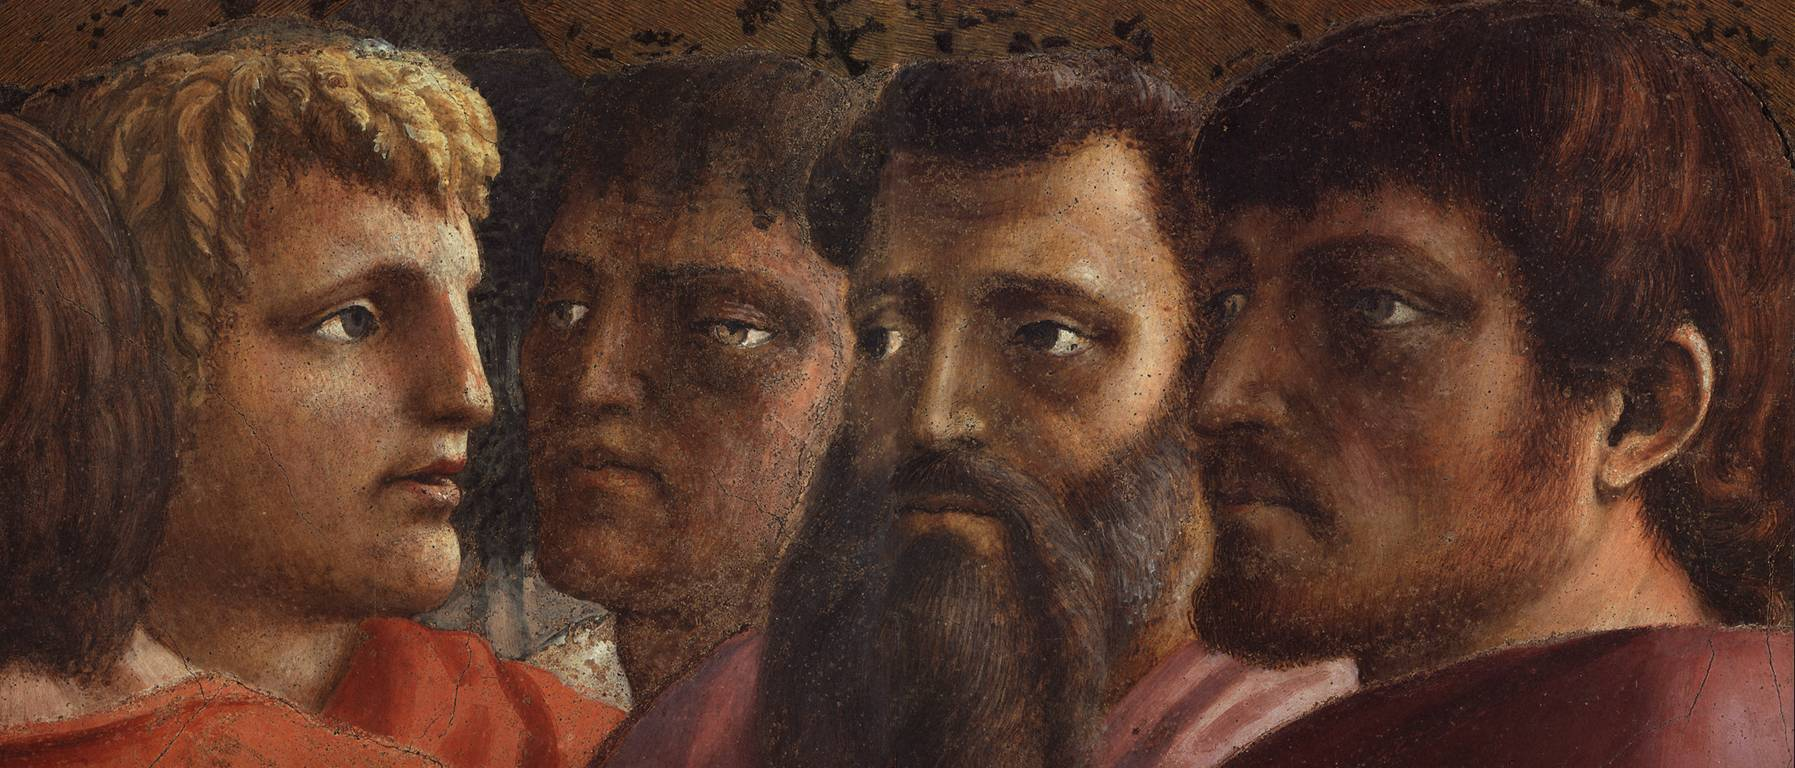 tribute money by masaccio The tribute money is one of many frescos painted by masaccio (and a lesser artist masolino) in the brancacci chapel all of the frescos tell the story of the life of st peter (considered to be the first pope) the story of the tribute money is told in three separate scenes within the same fresco.